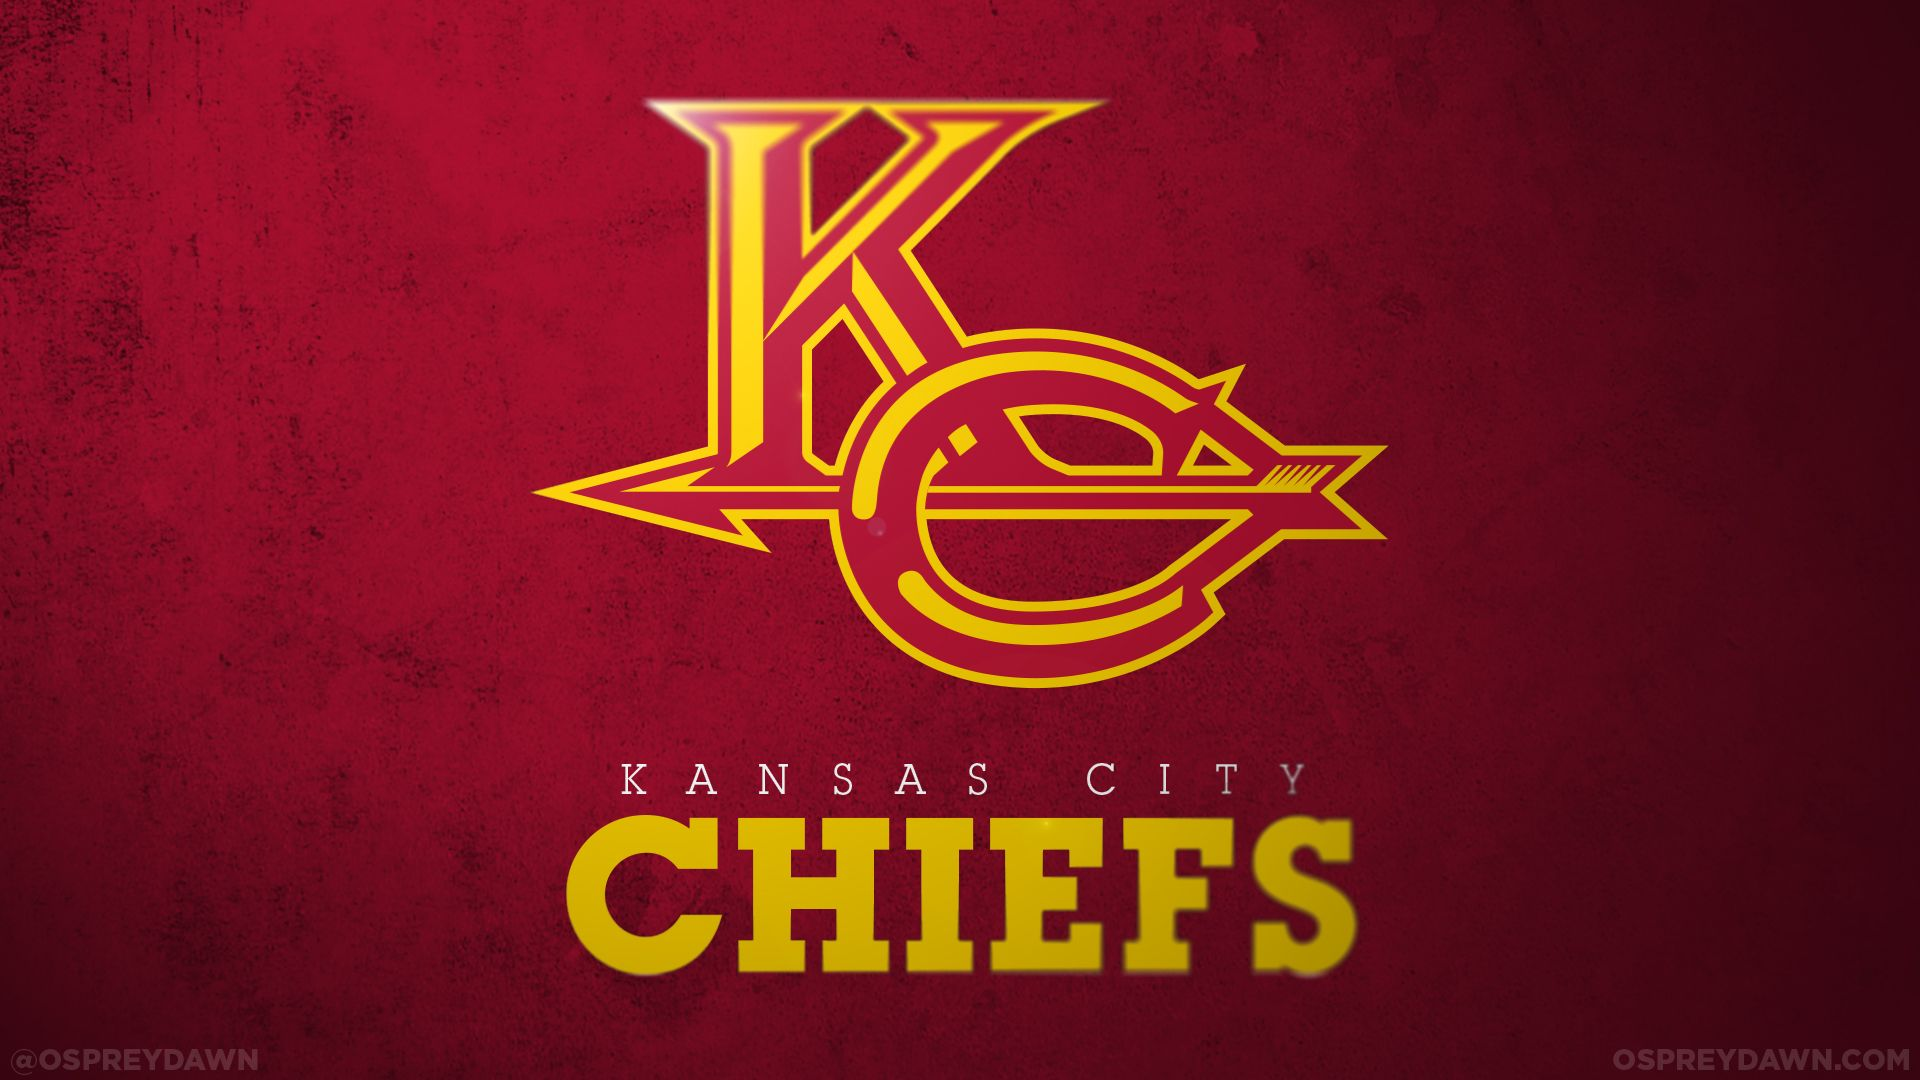 Kansas City Chiefs Football Team Logo Wallpaper